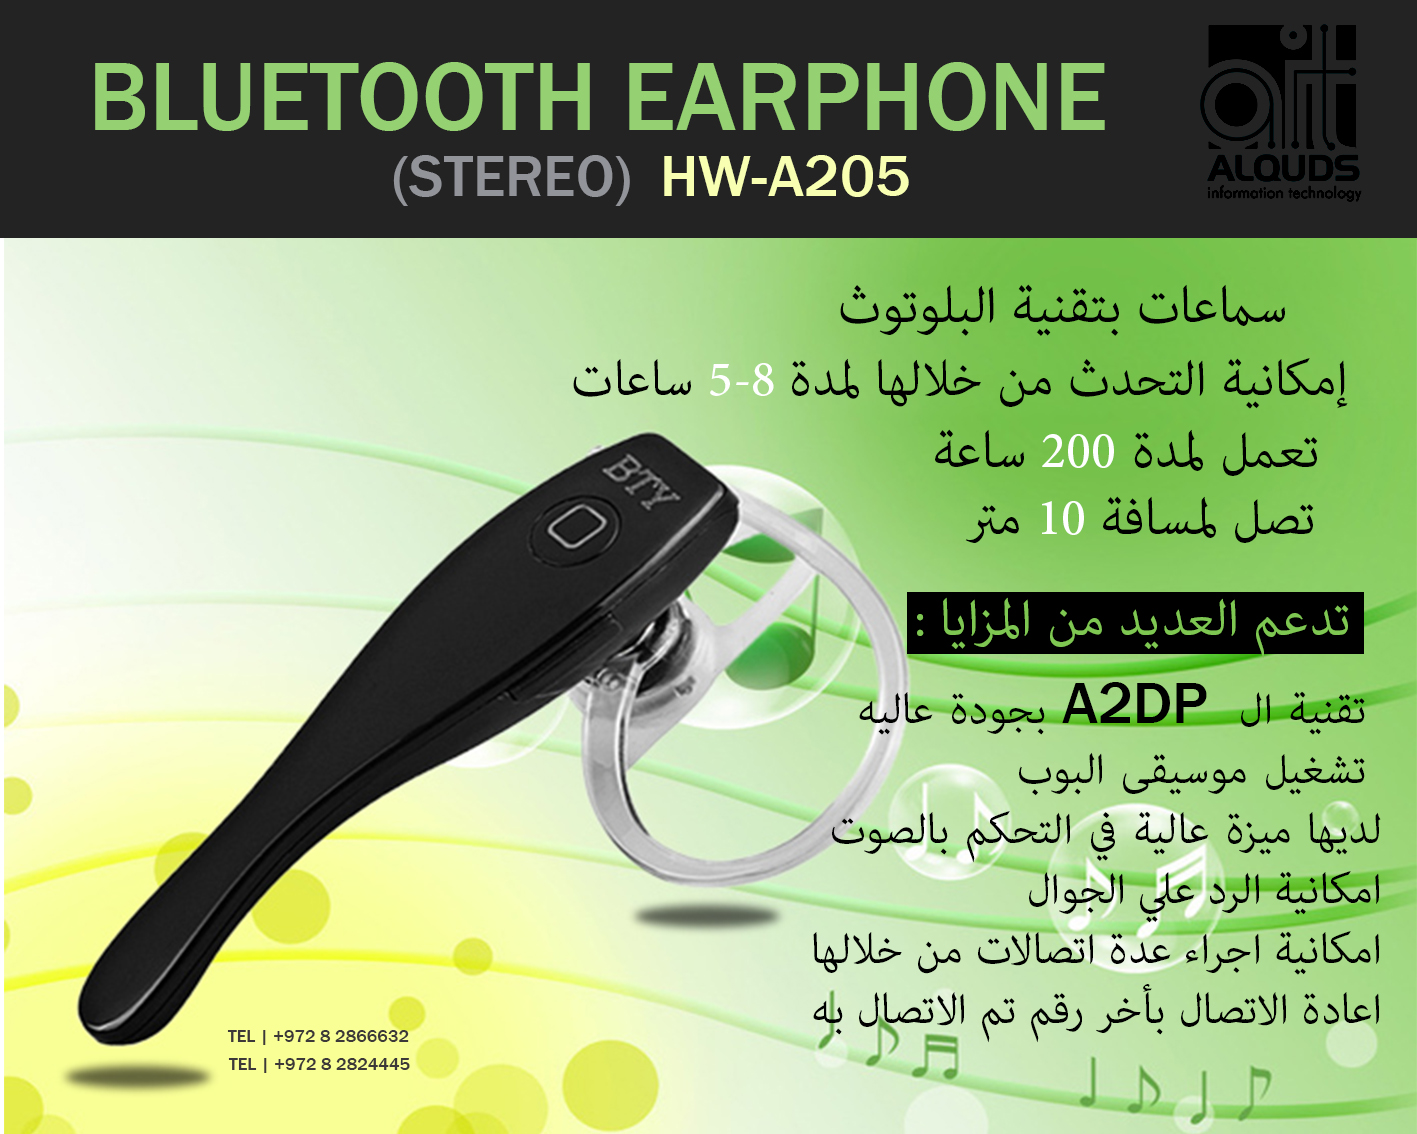 BLUETOOTH EARPHONE  HW-A205